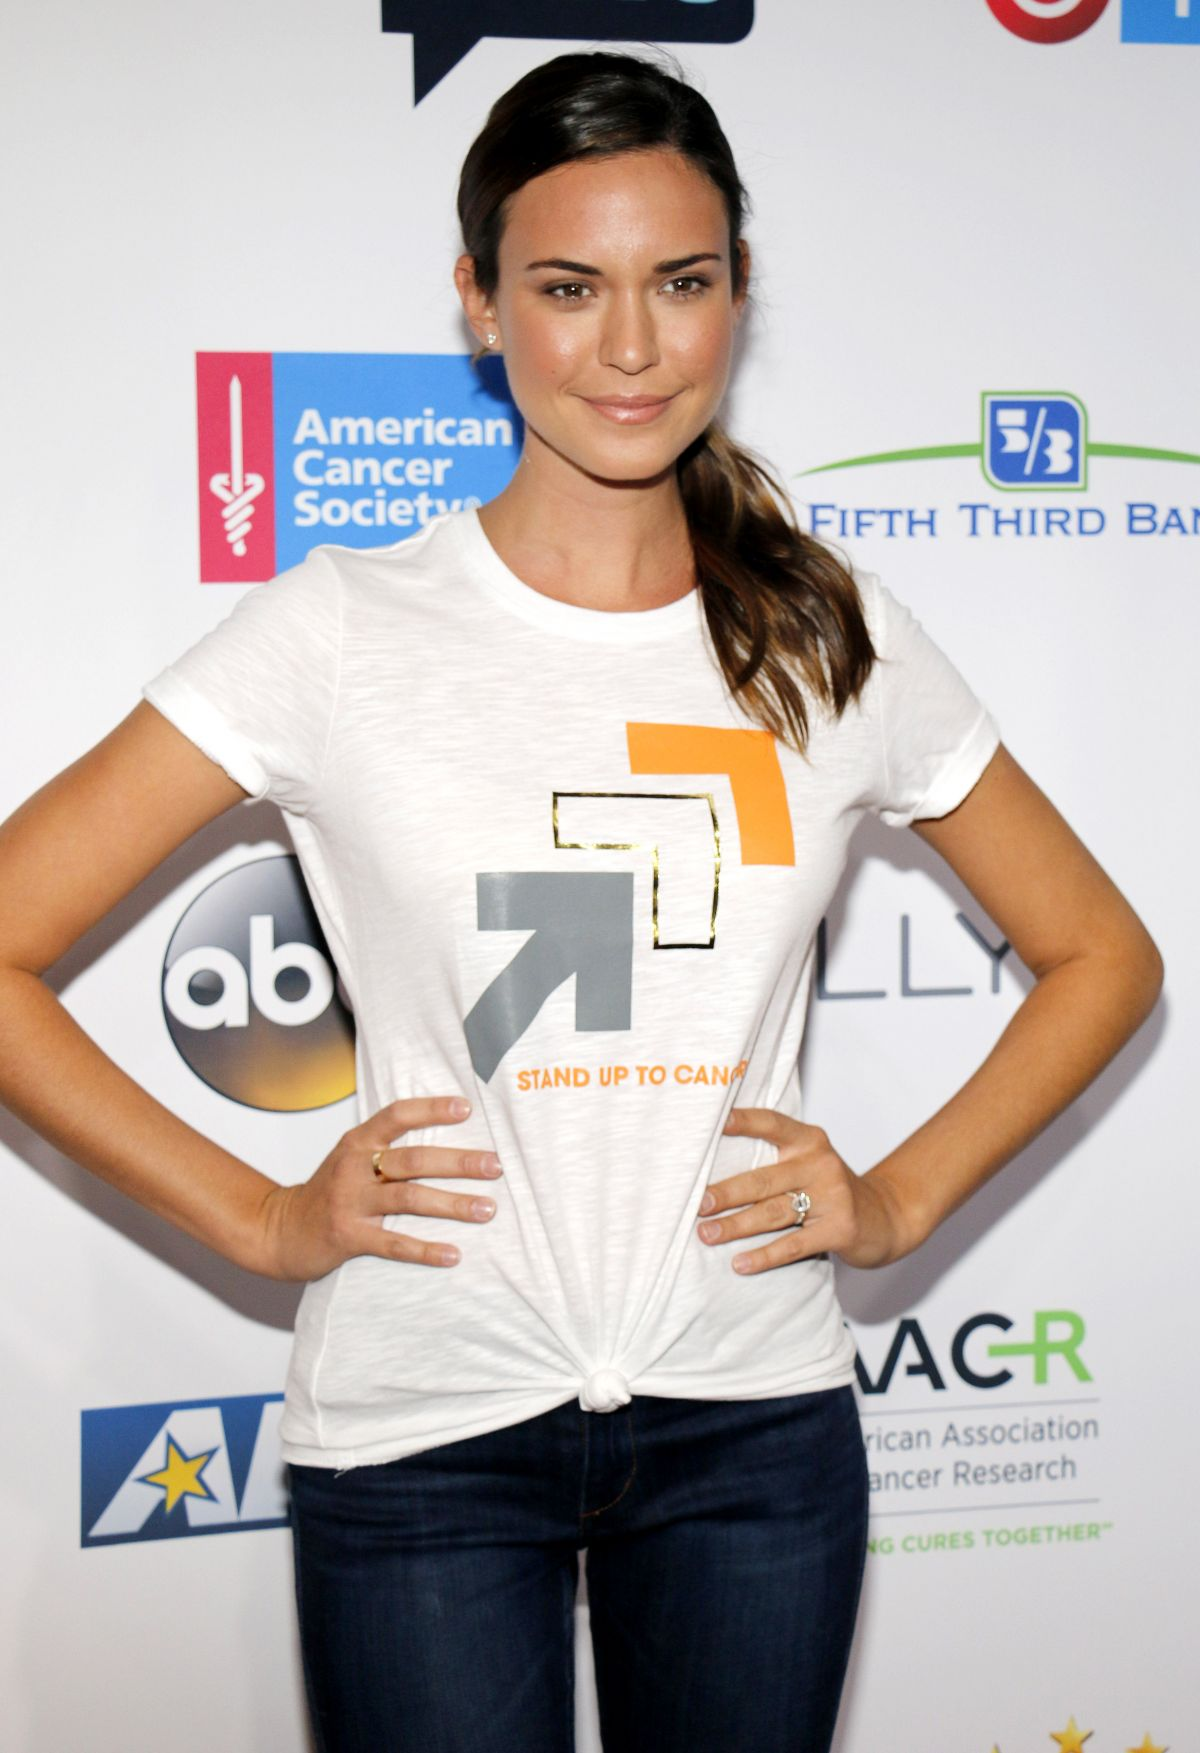 Odette Annable At 5th Biennial Stand Up To Cancer at Walt Disney Concert Hall in Los Angeles, CA   odette-annable-at-5th-biennial-stand-up-to-cancer-at-walt-disney-concert-hall-in-los-angeles-ca_15